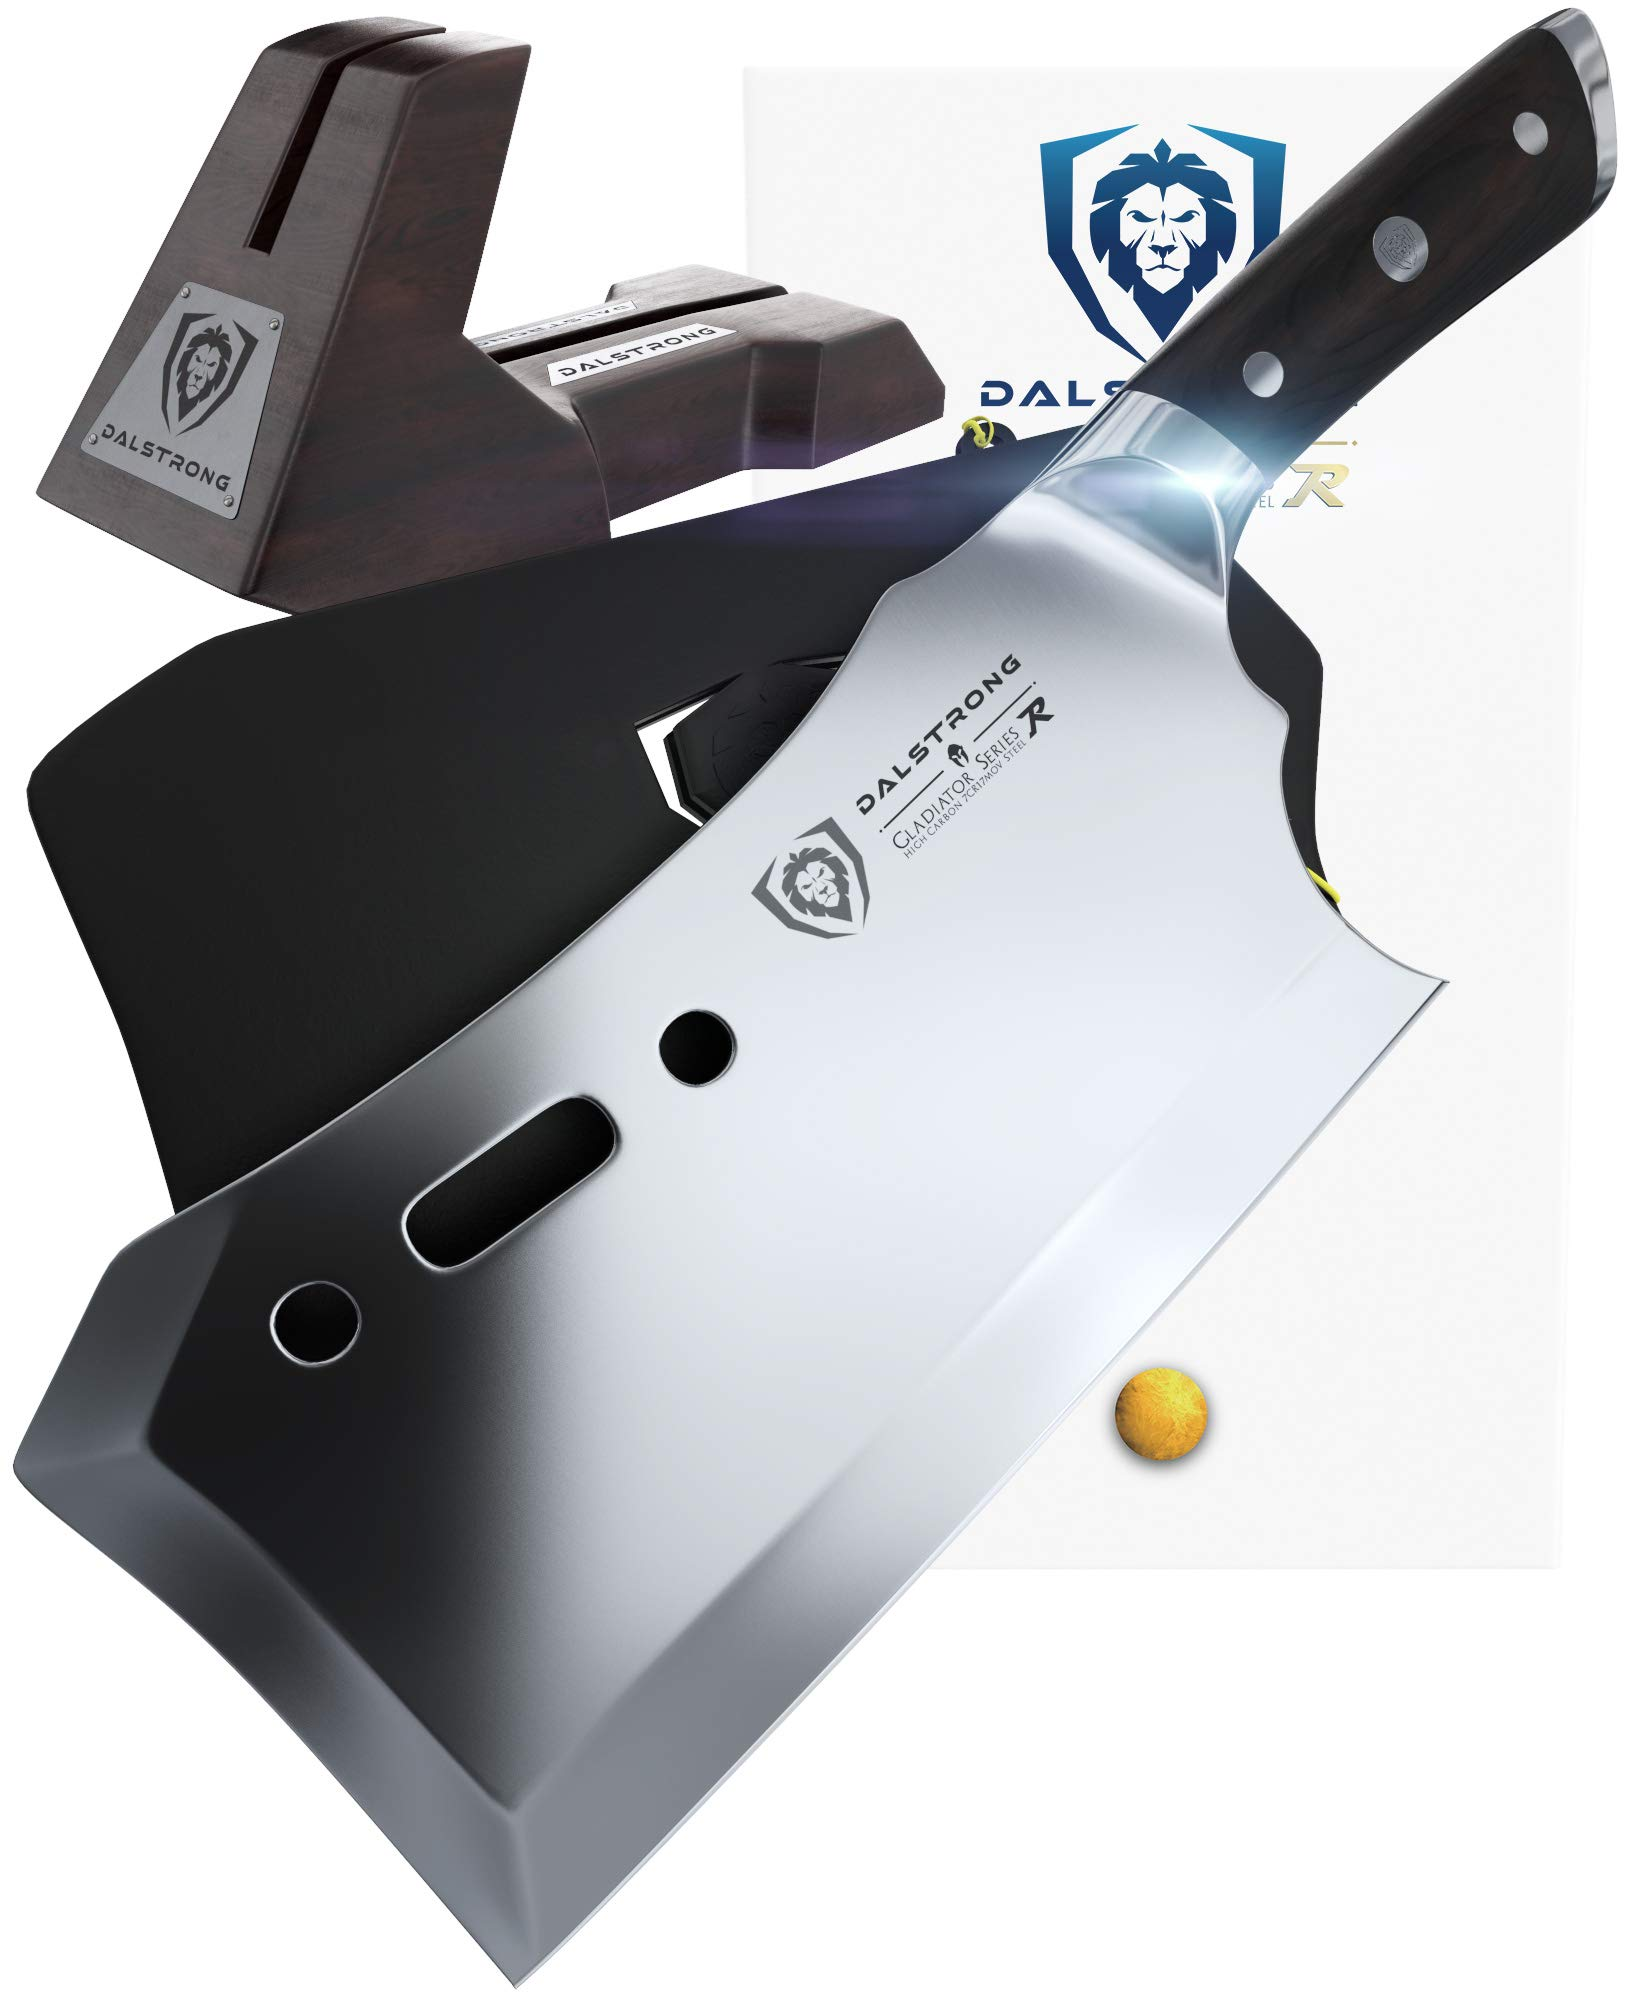 DALSTRONG Gladiator Series R - Obliterator Meat Cleaver - 9'' - with Stand and Sheath - Massive Heavy Duty - 7CR17MOV High Carbon Steel - 3lbs - 6mm Thick